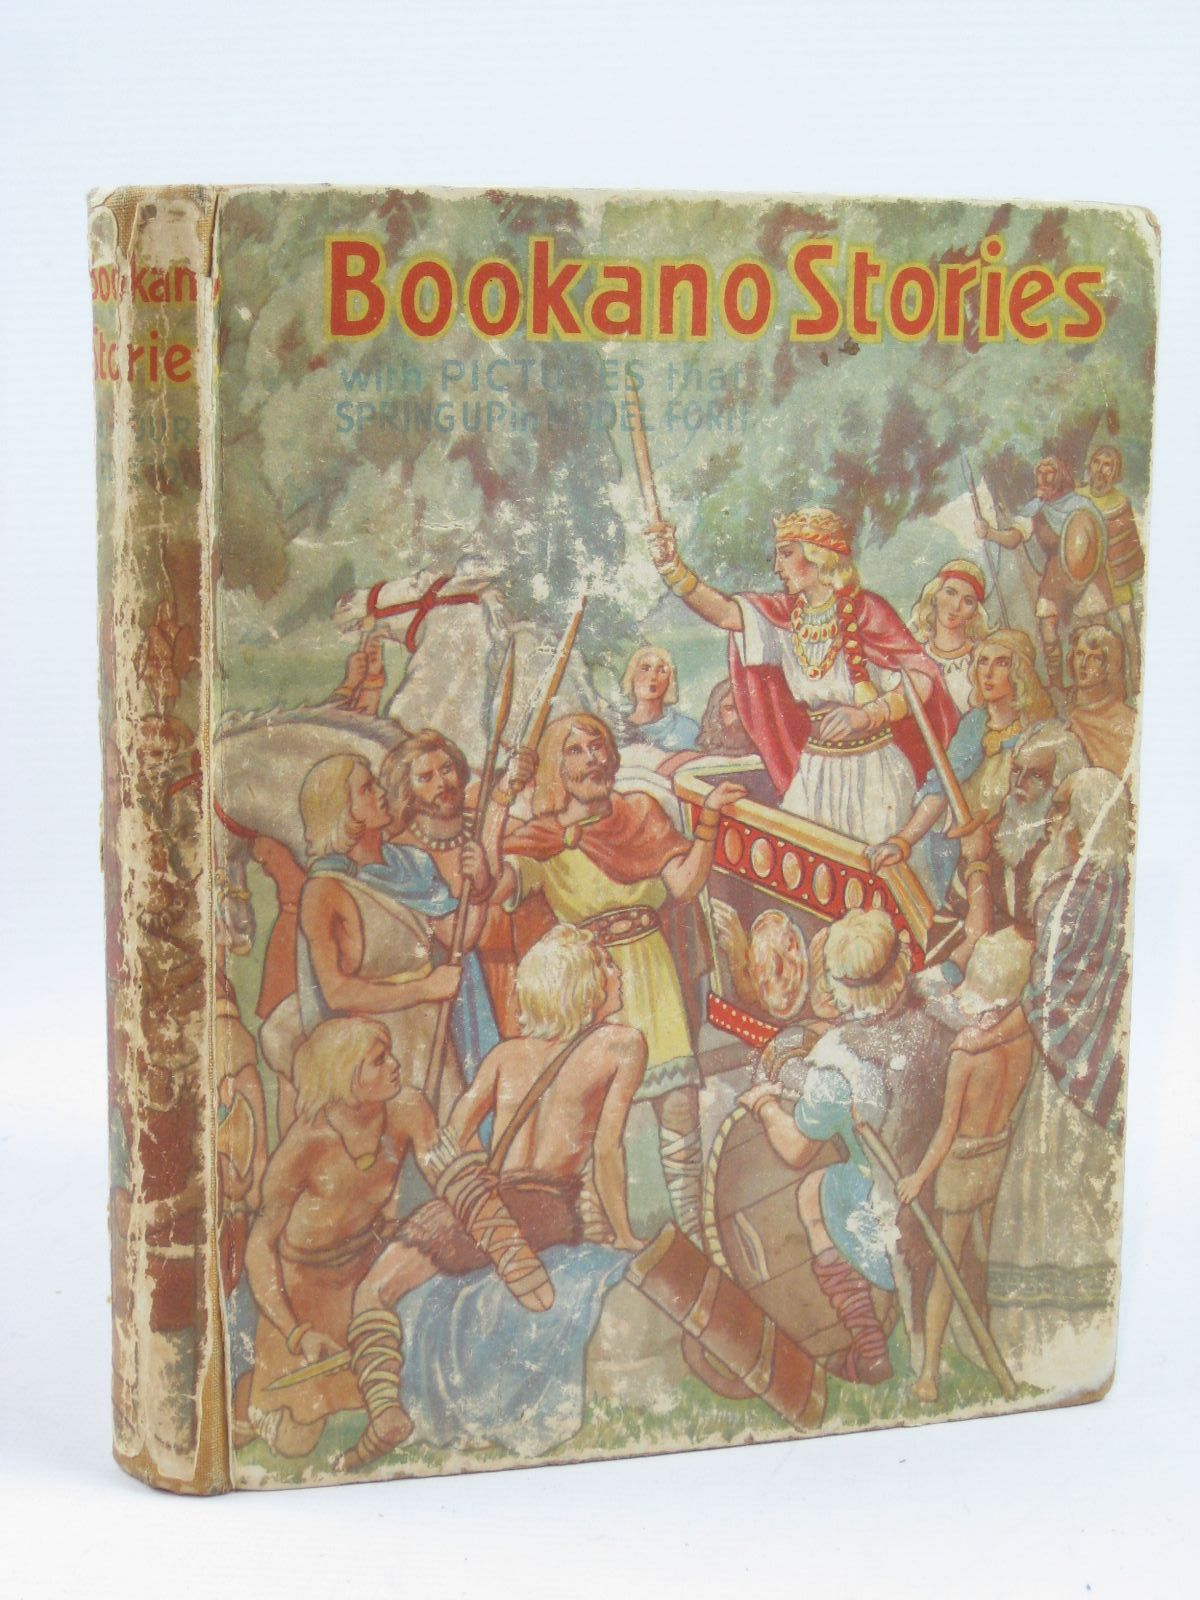 Photo of BOOKANO STORIES WITH PICTURES THAT SPRING UP IN MODEL FORM written by Giraud, S. Louis published by Strand Publications (STOCK CODE: 1406467)  for sale by Stella & Rose's Books